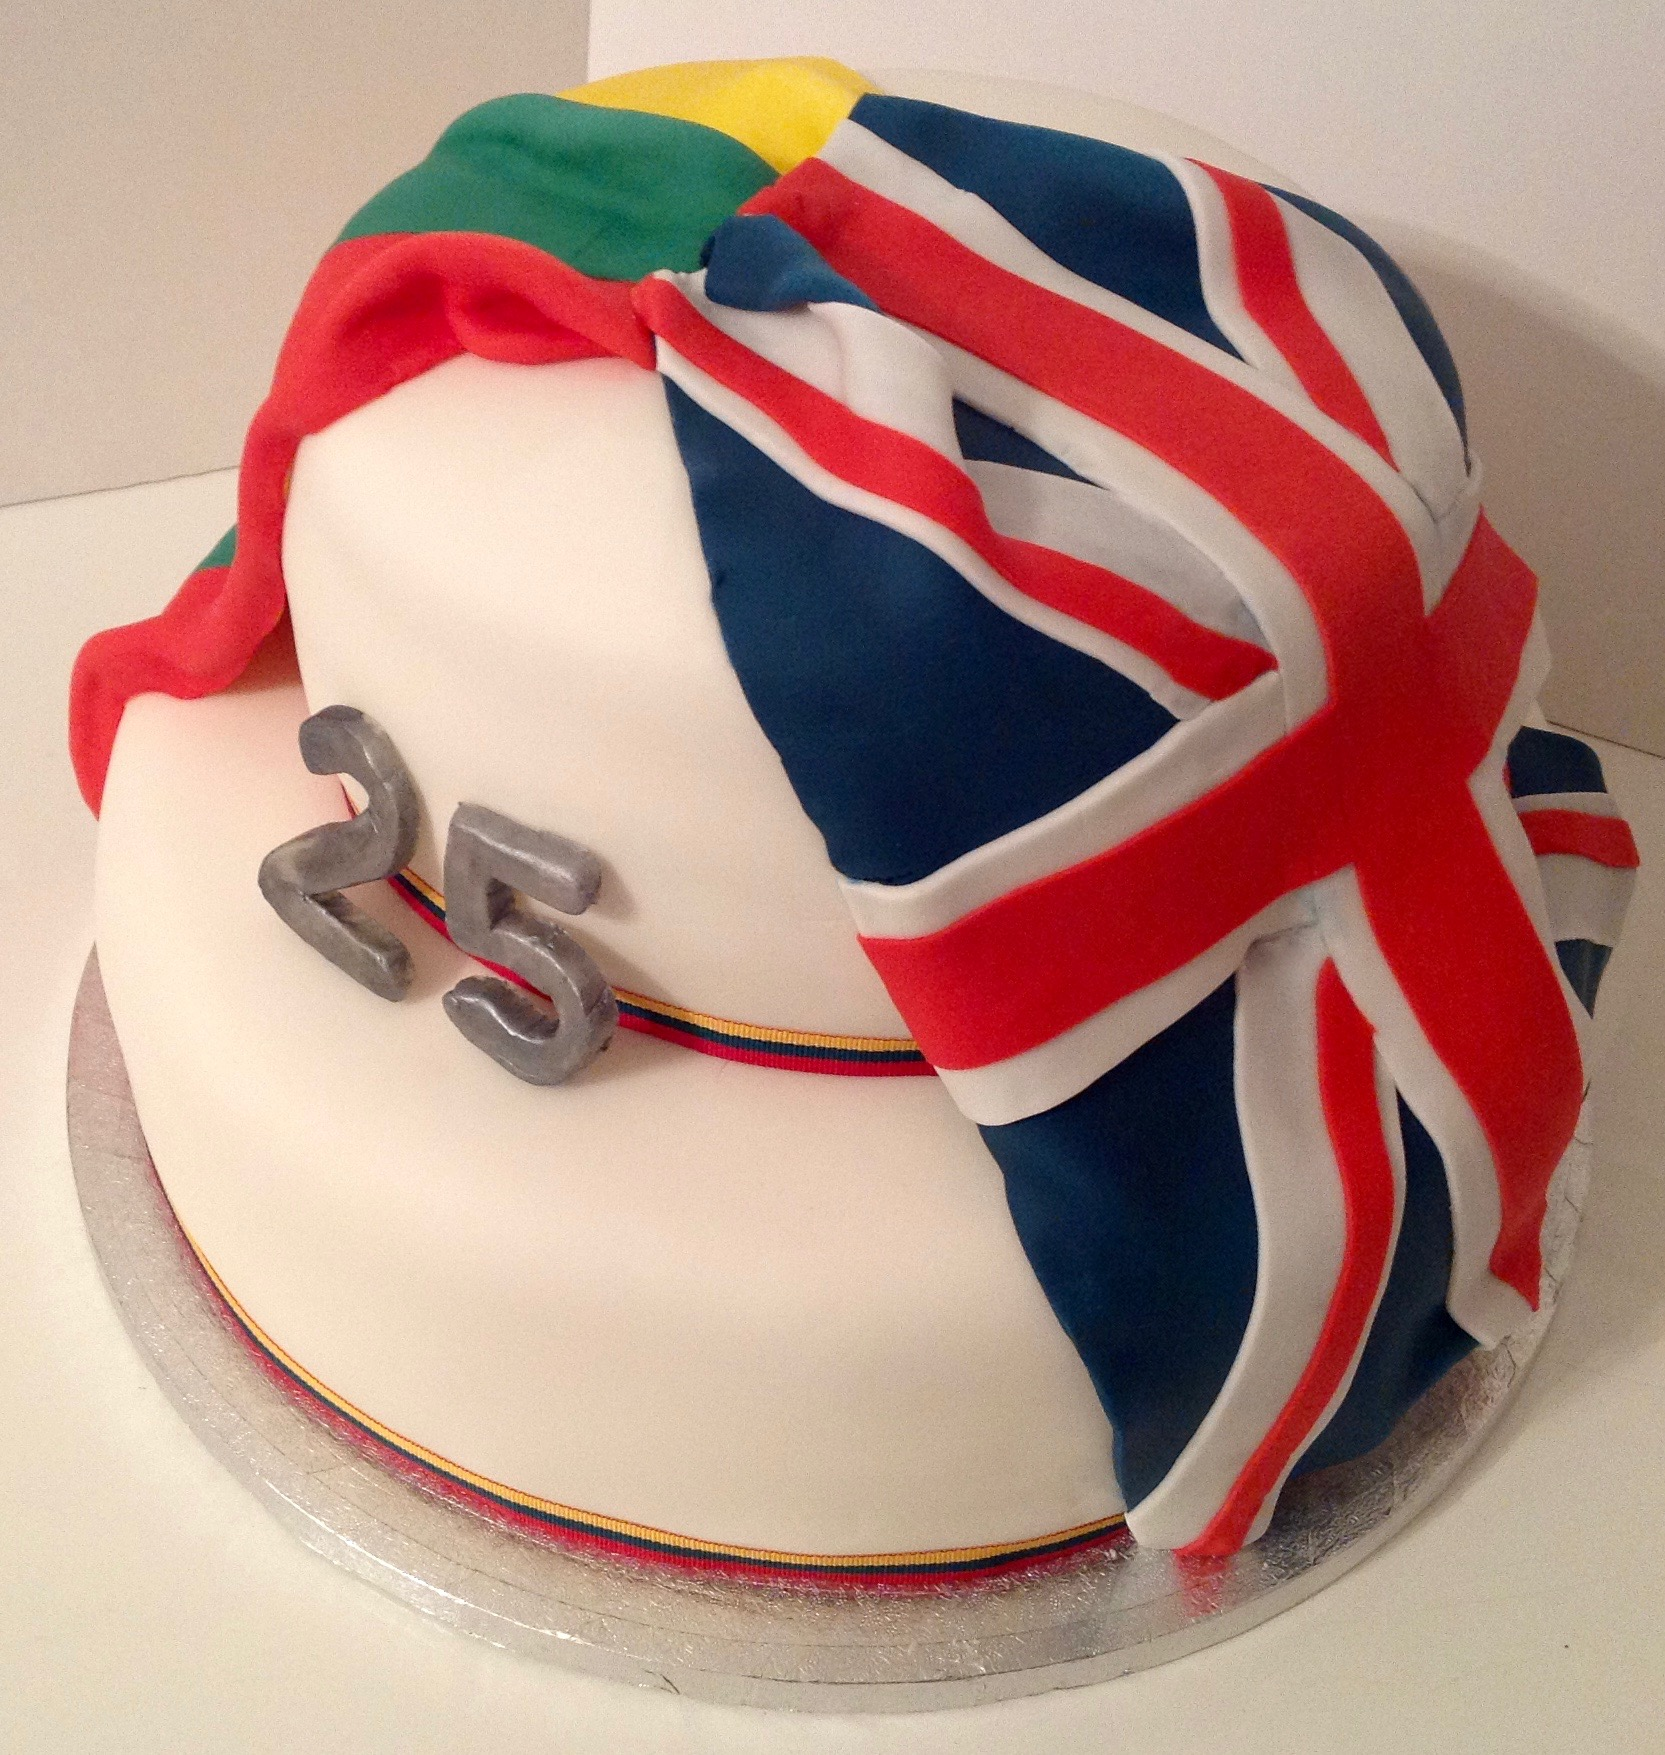 Lithuanian British 25th Anniversary two-tier celebration flag cake